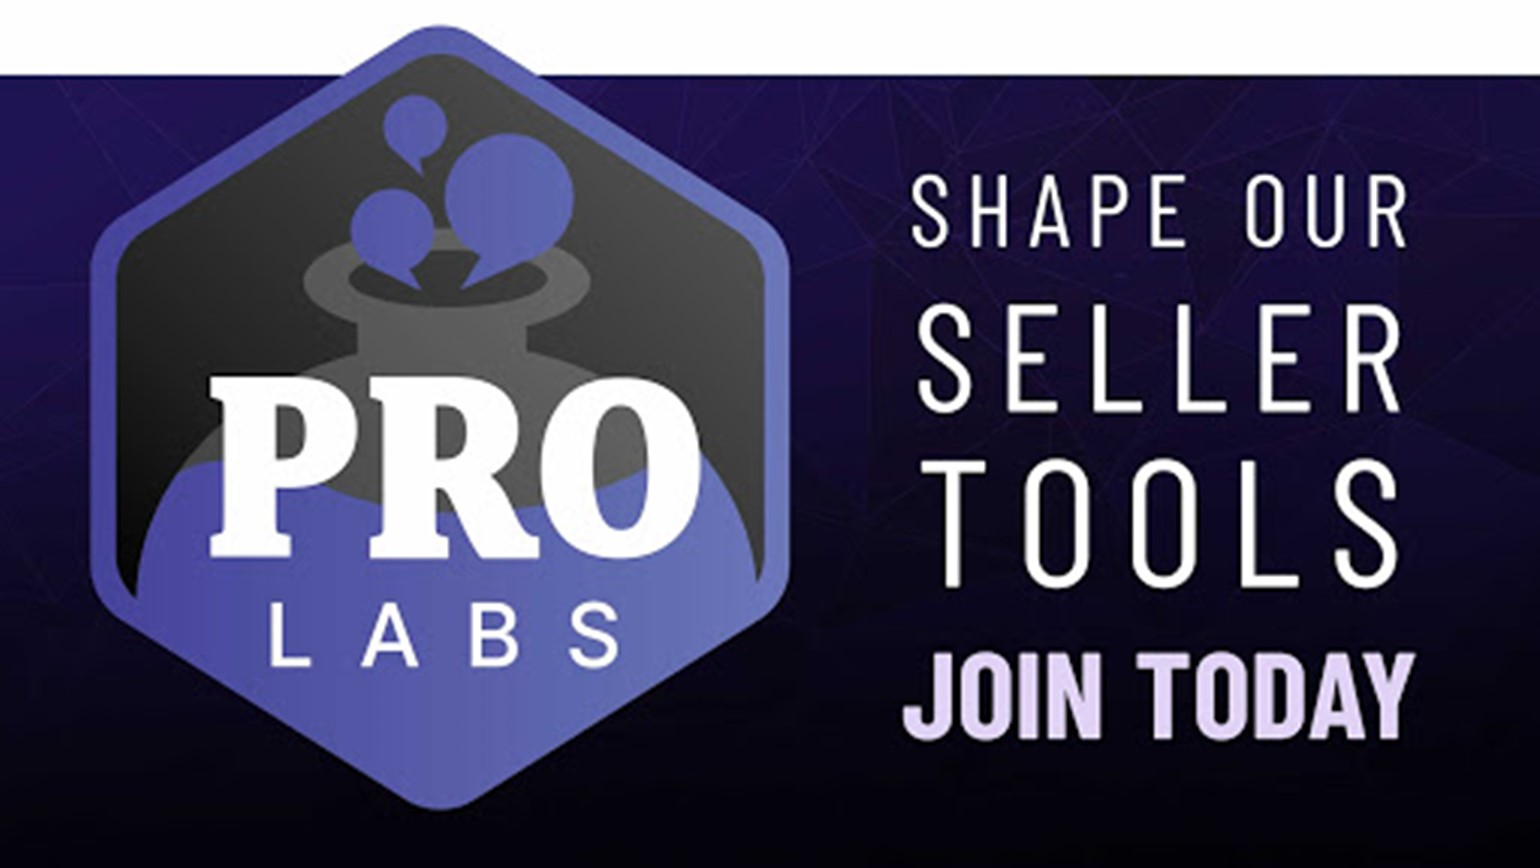 Shape Your Seller Tools by Joining Pro Labs Program